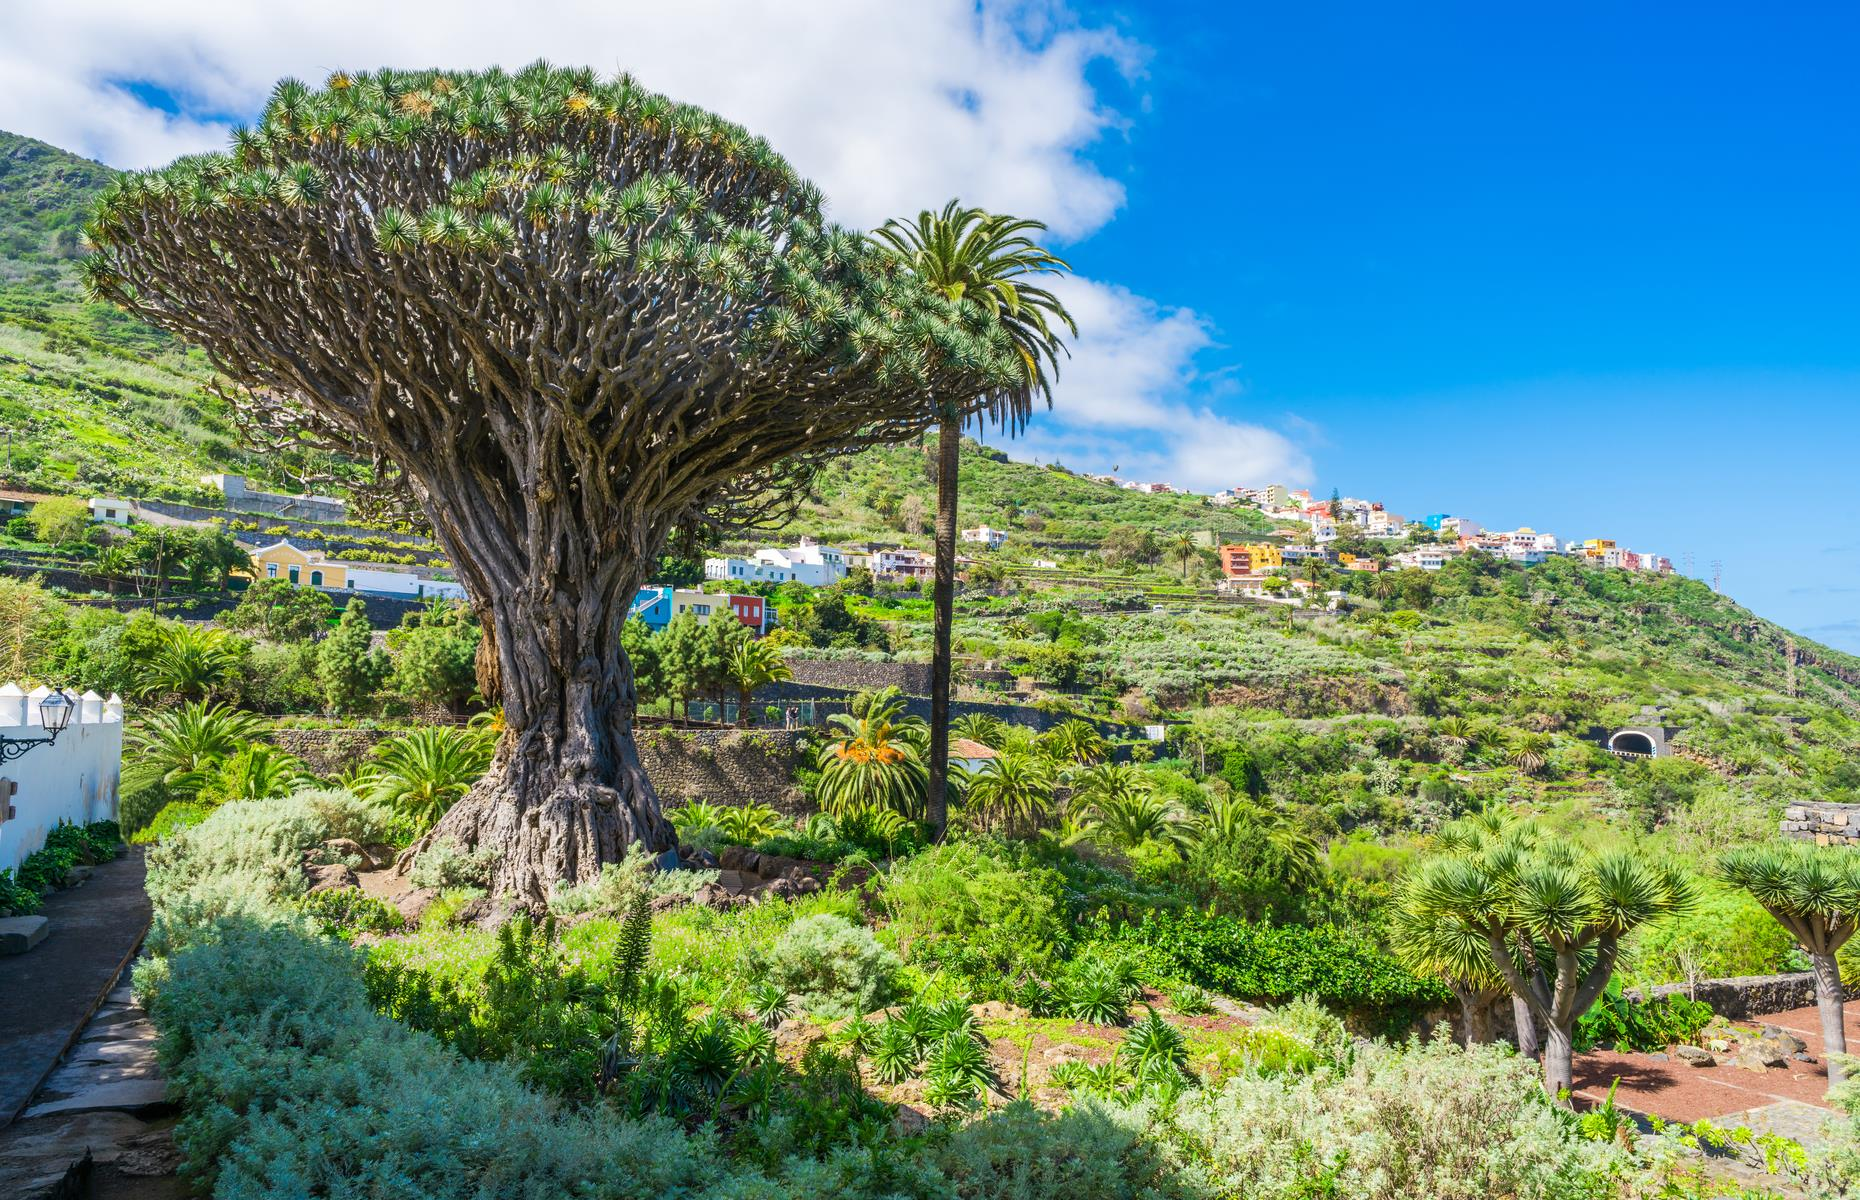 Slide 23 of 27: The island's most celebrated dragon tree – known as the Millennial Dragon Tree (Drago Milenario) – lies in the lush town of Icod de los Vinos in northern Tenerife. It's the largest and oldest tree of its kind, estimated to be around 1,000 years old.